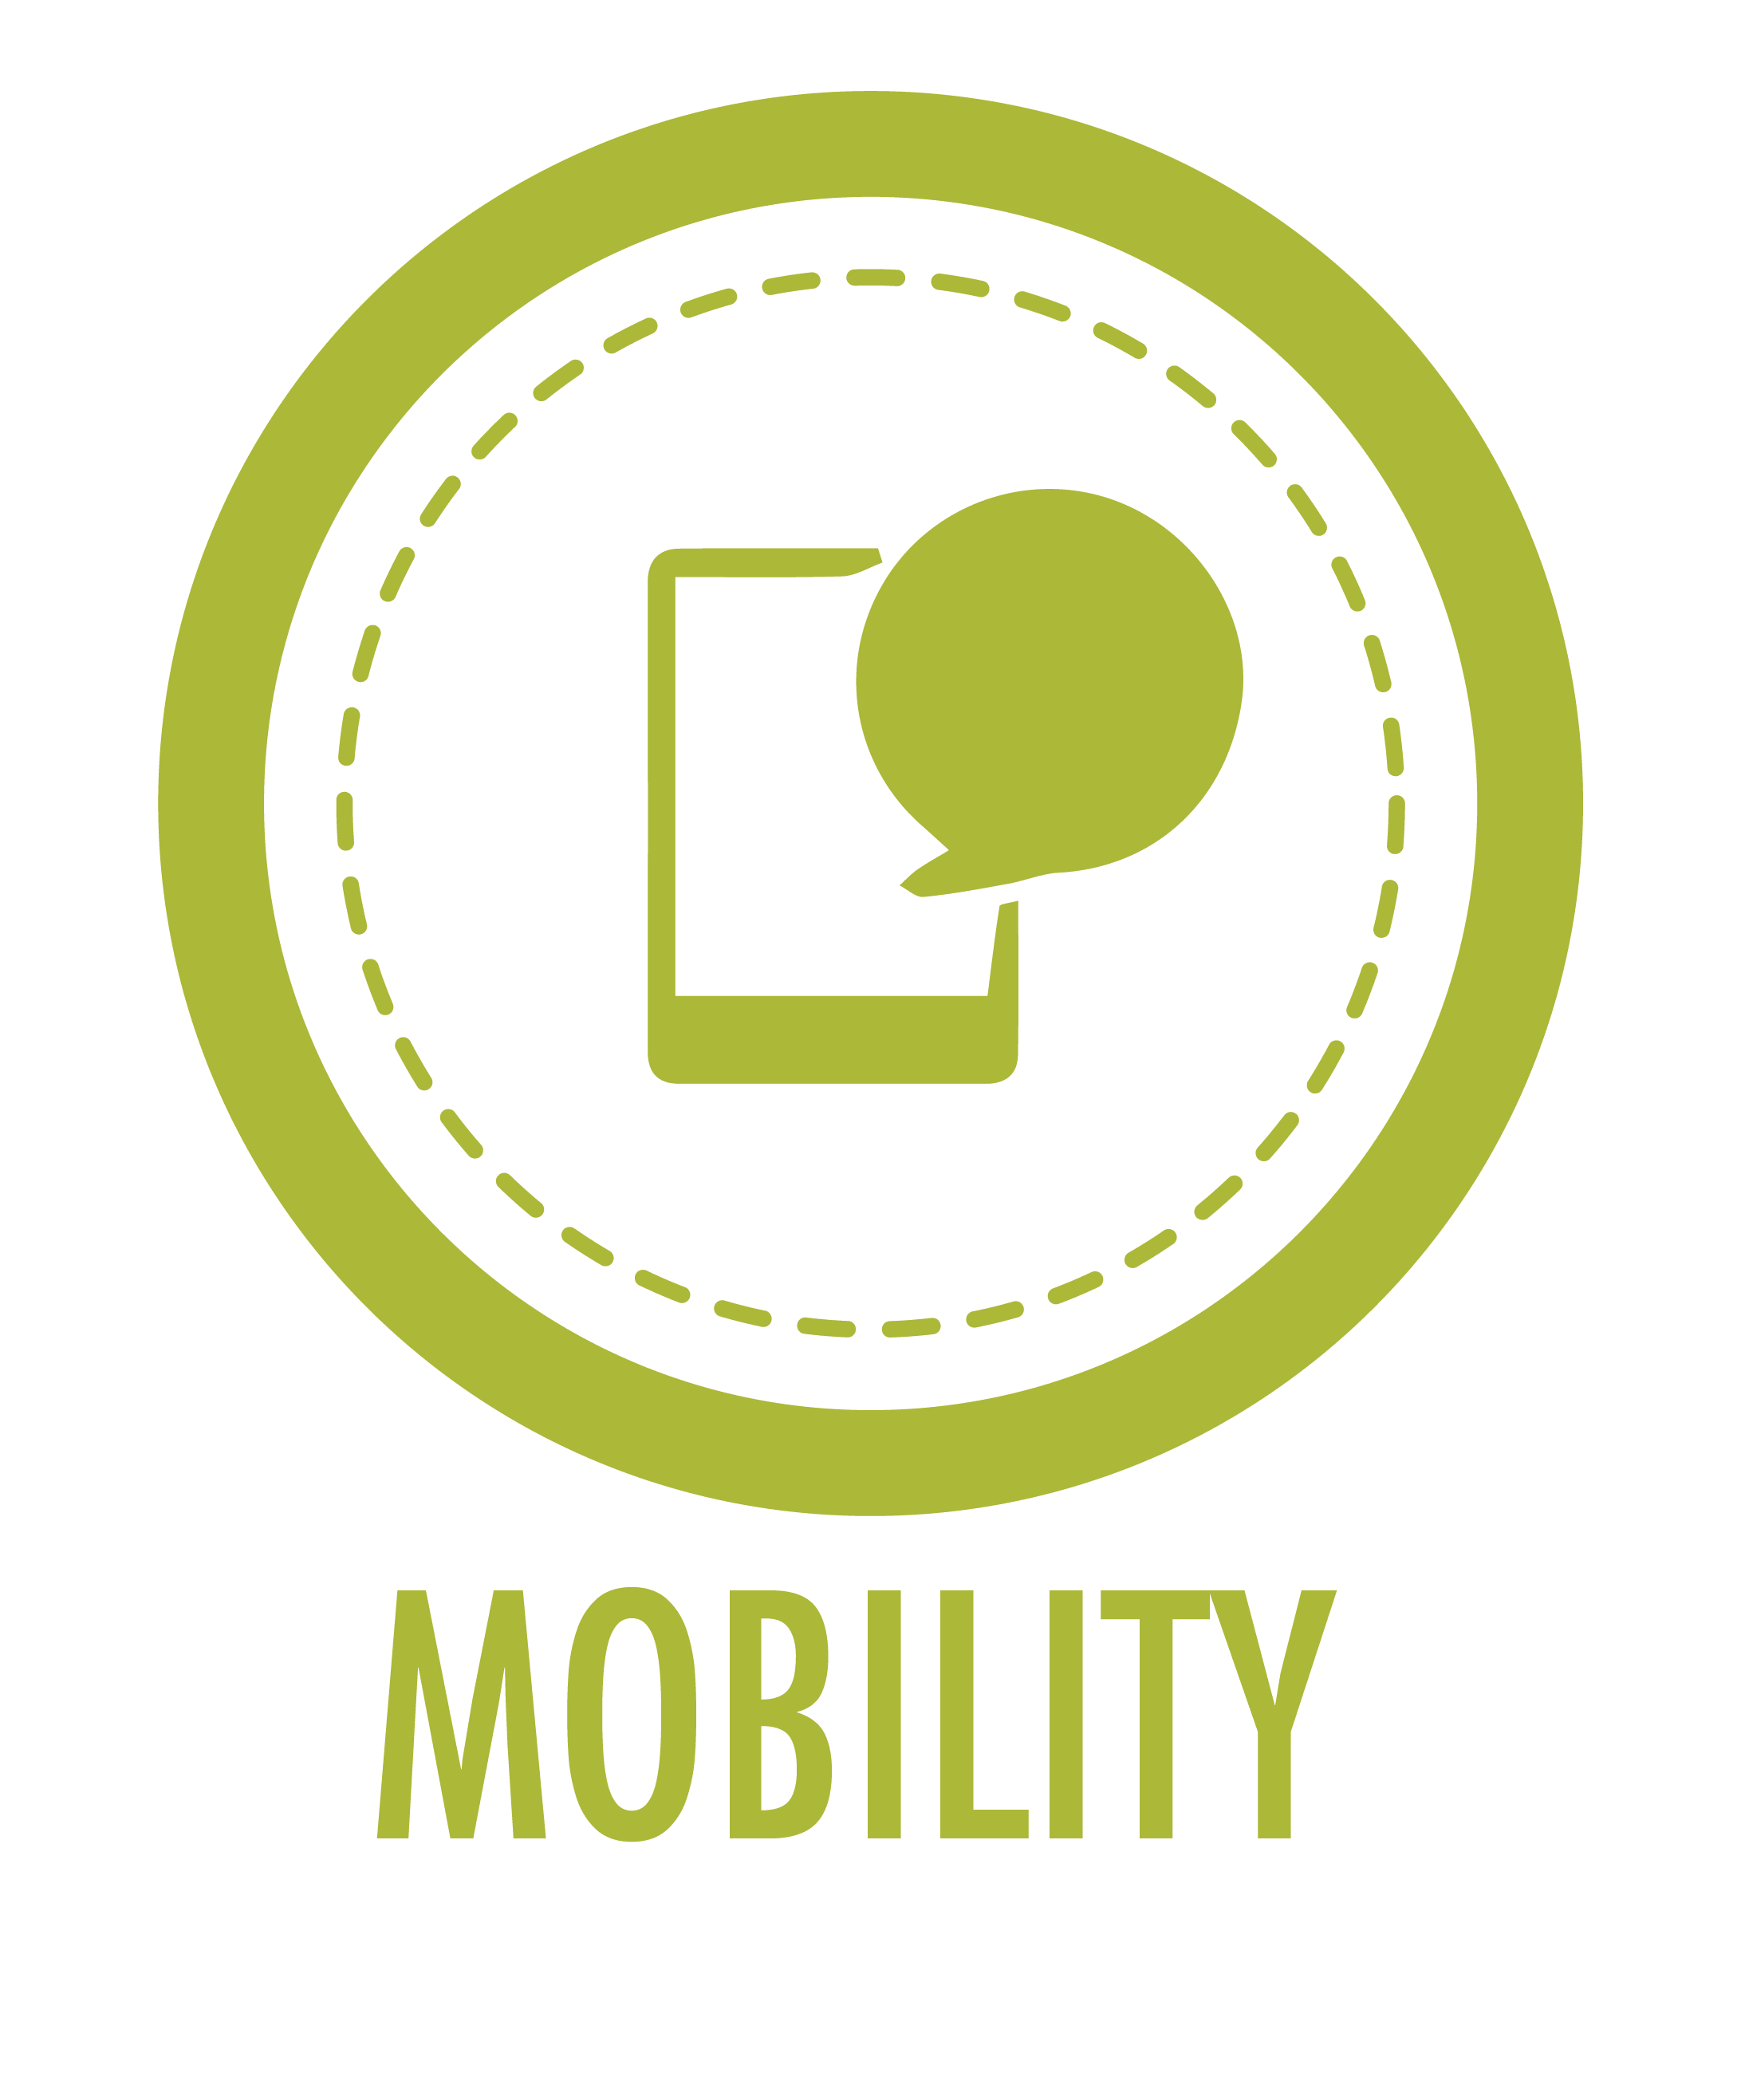 mobility solutions graphic